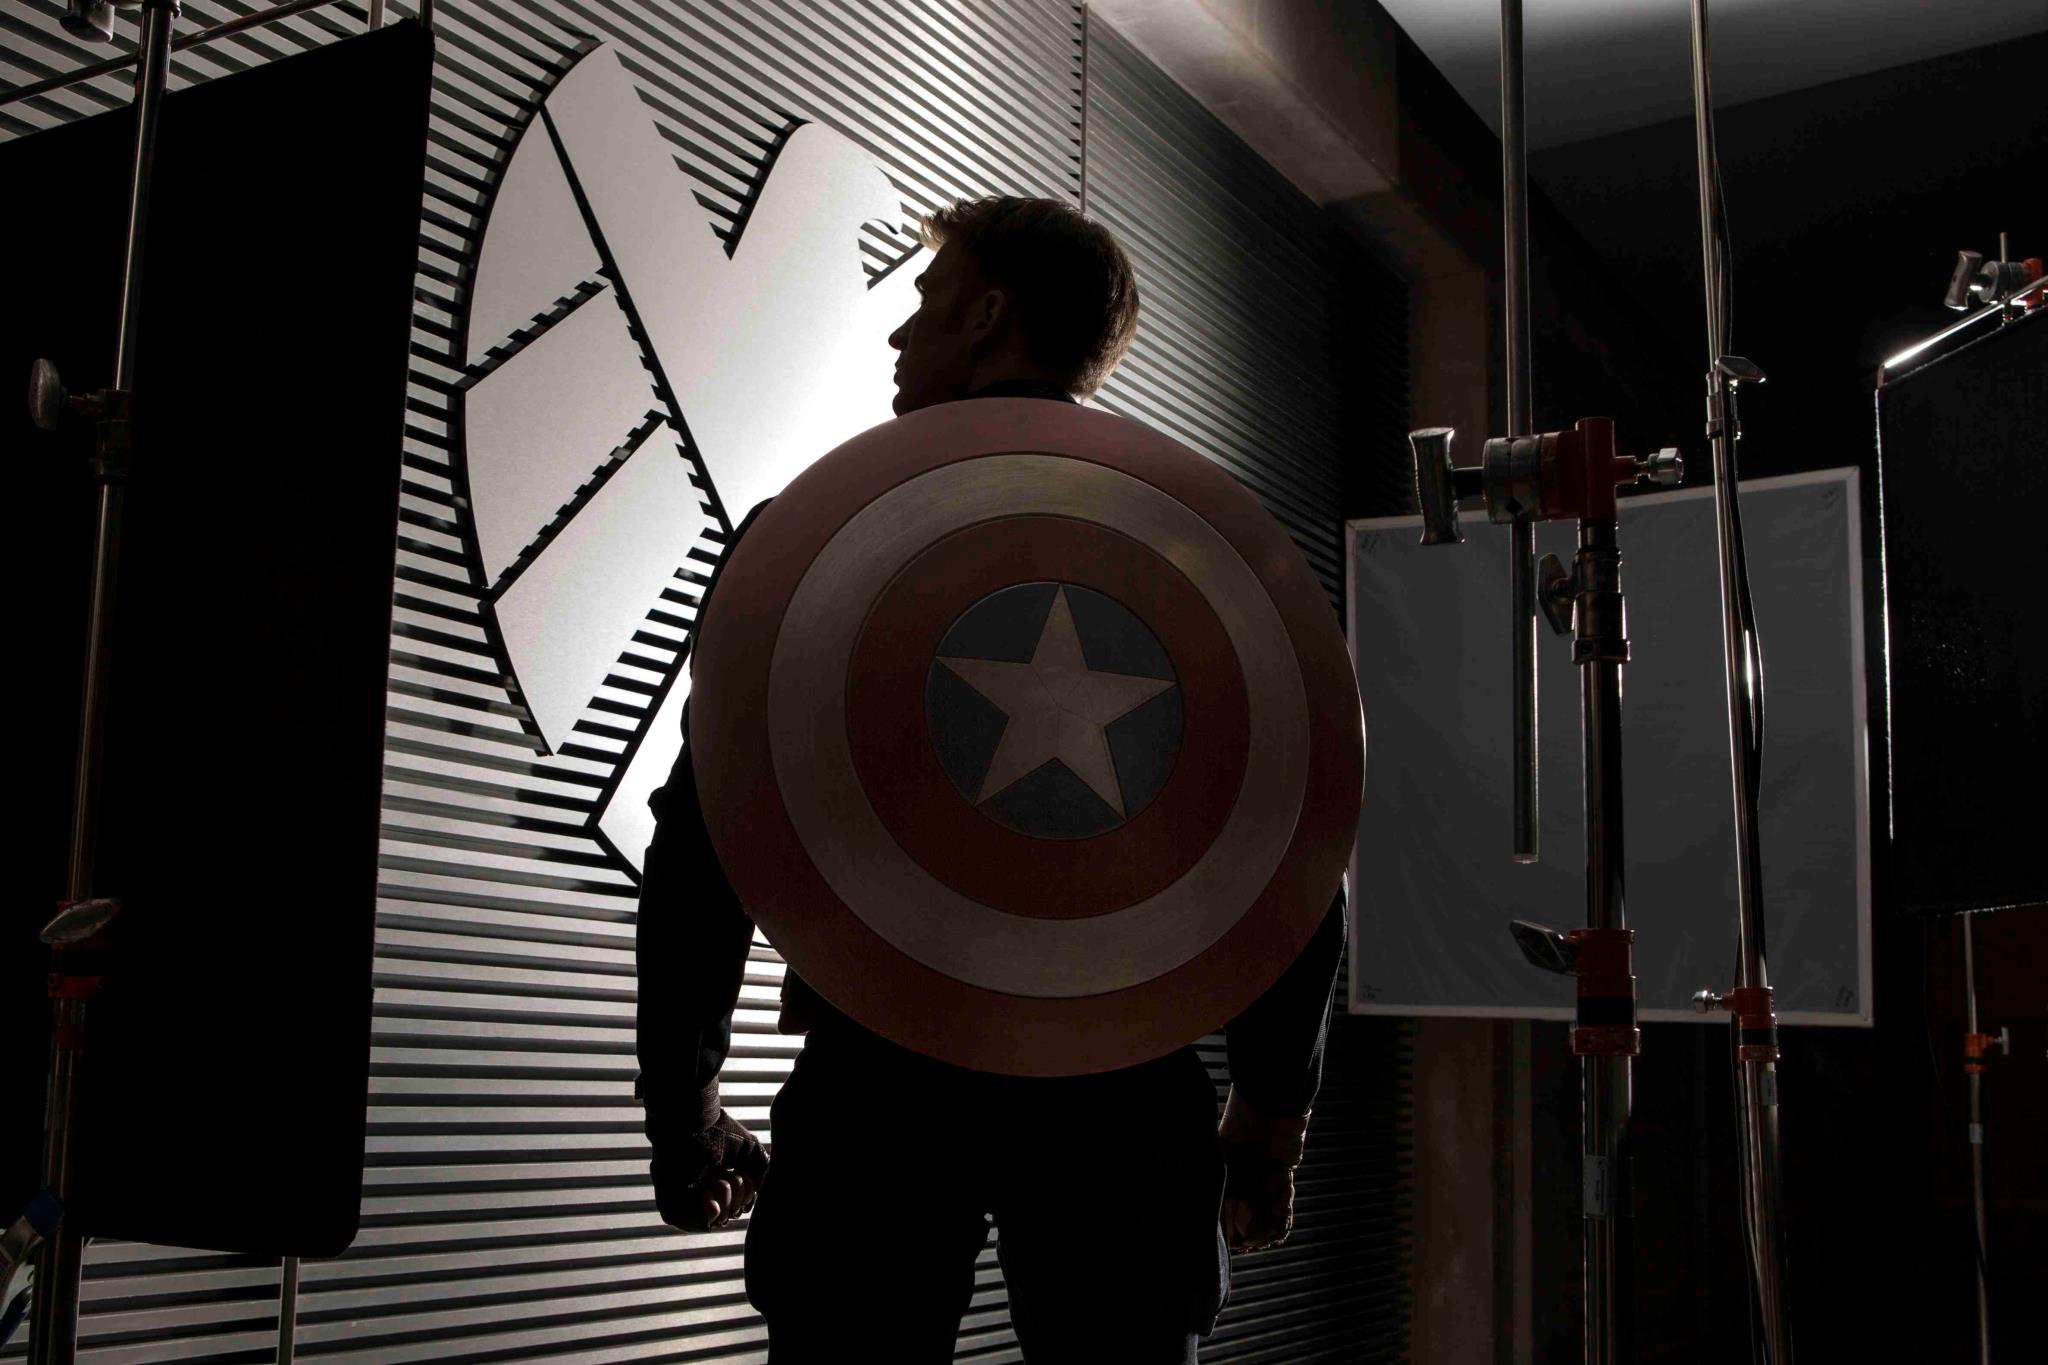 Cap is challenged to decide who to trust. From marvel-movies.wikia.com